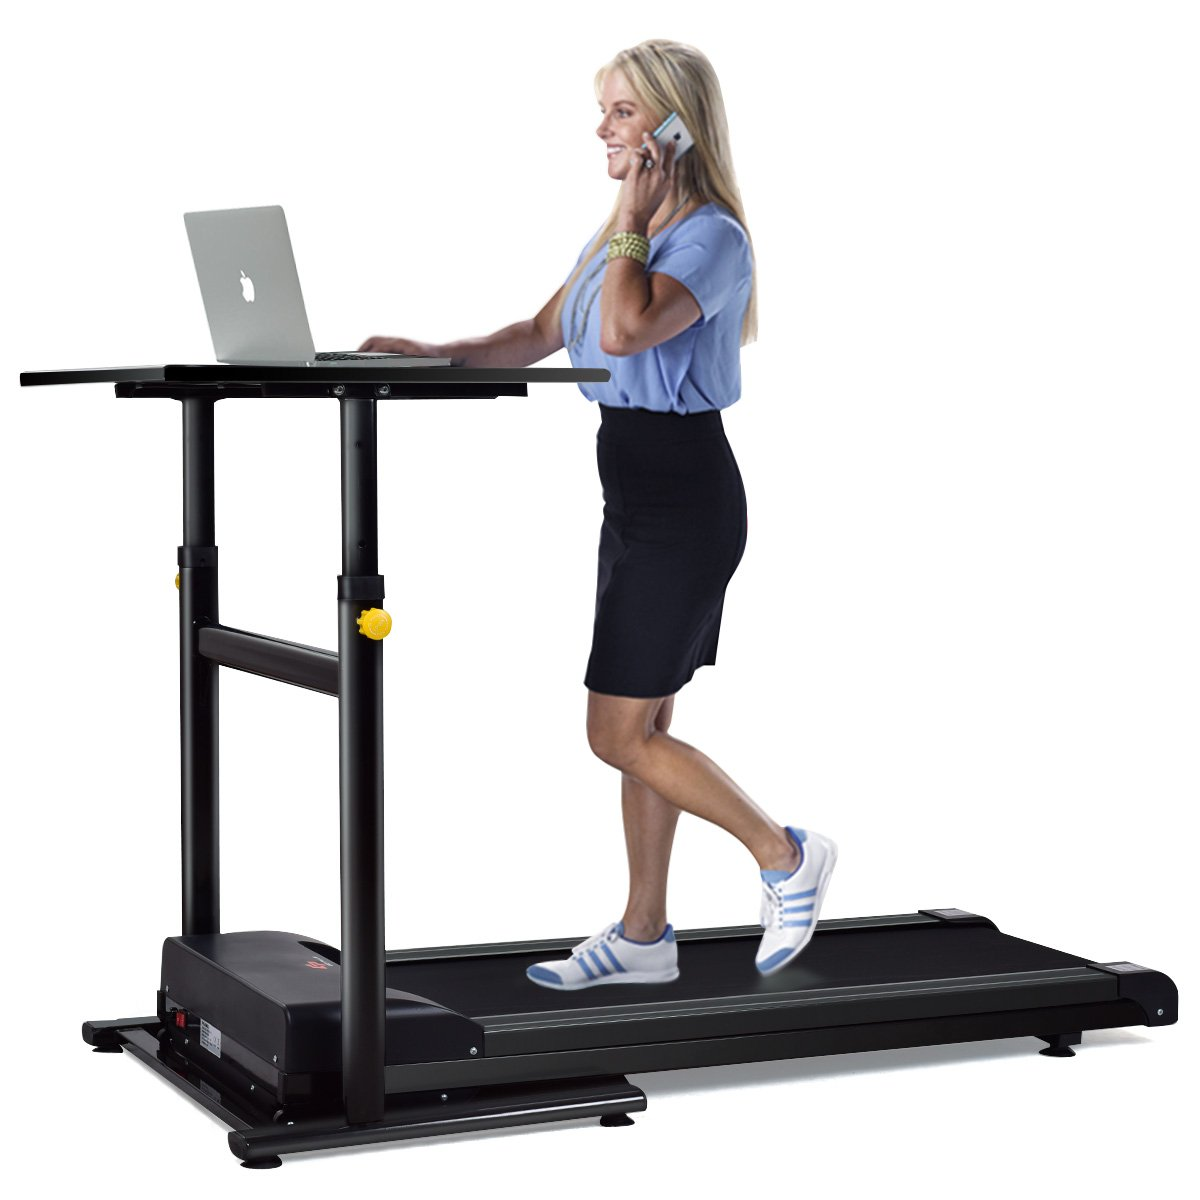 Goplus Treadmill Desk Standing Walking Treadmill Electric Machine W/ Tabletop Height Adjustable Treadmill Workstation Perfect for Office & Home